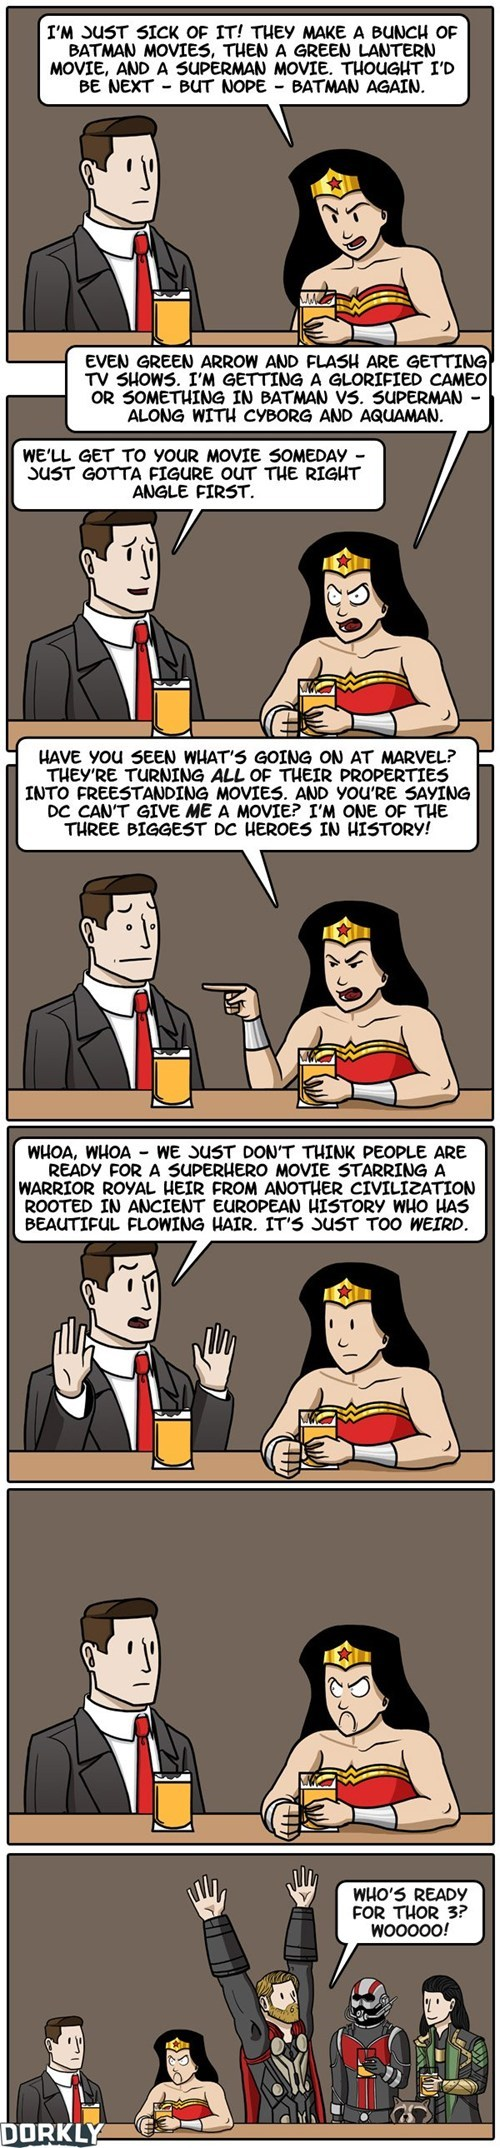 Wonder Woman Always Gets The Short End of The Stick